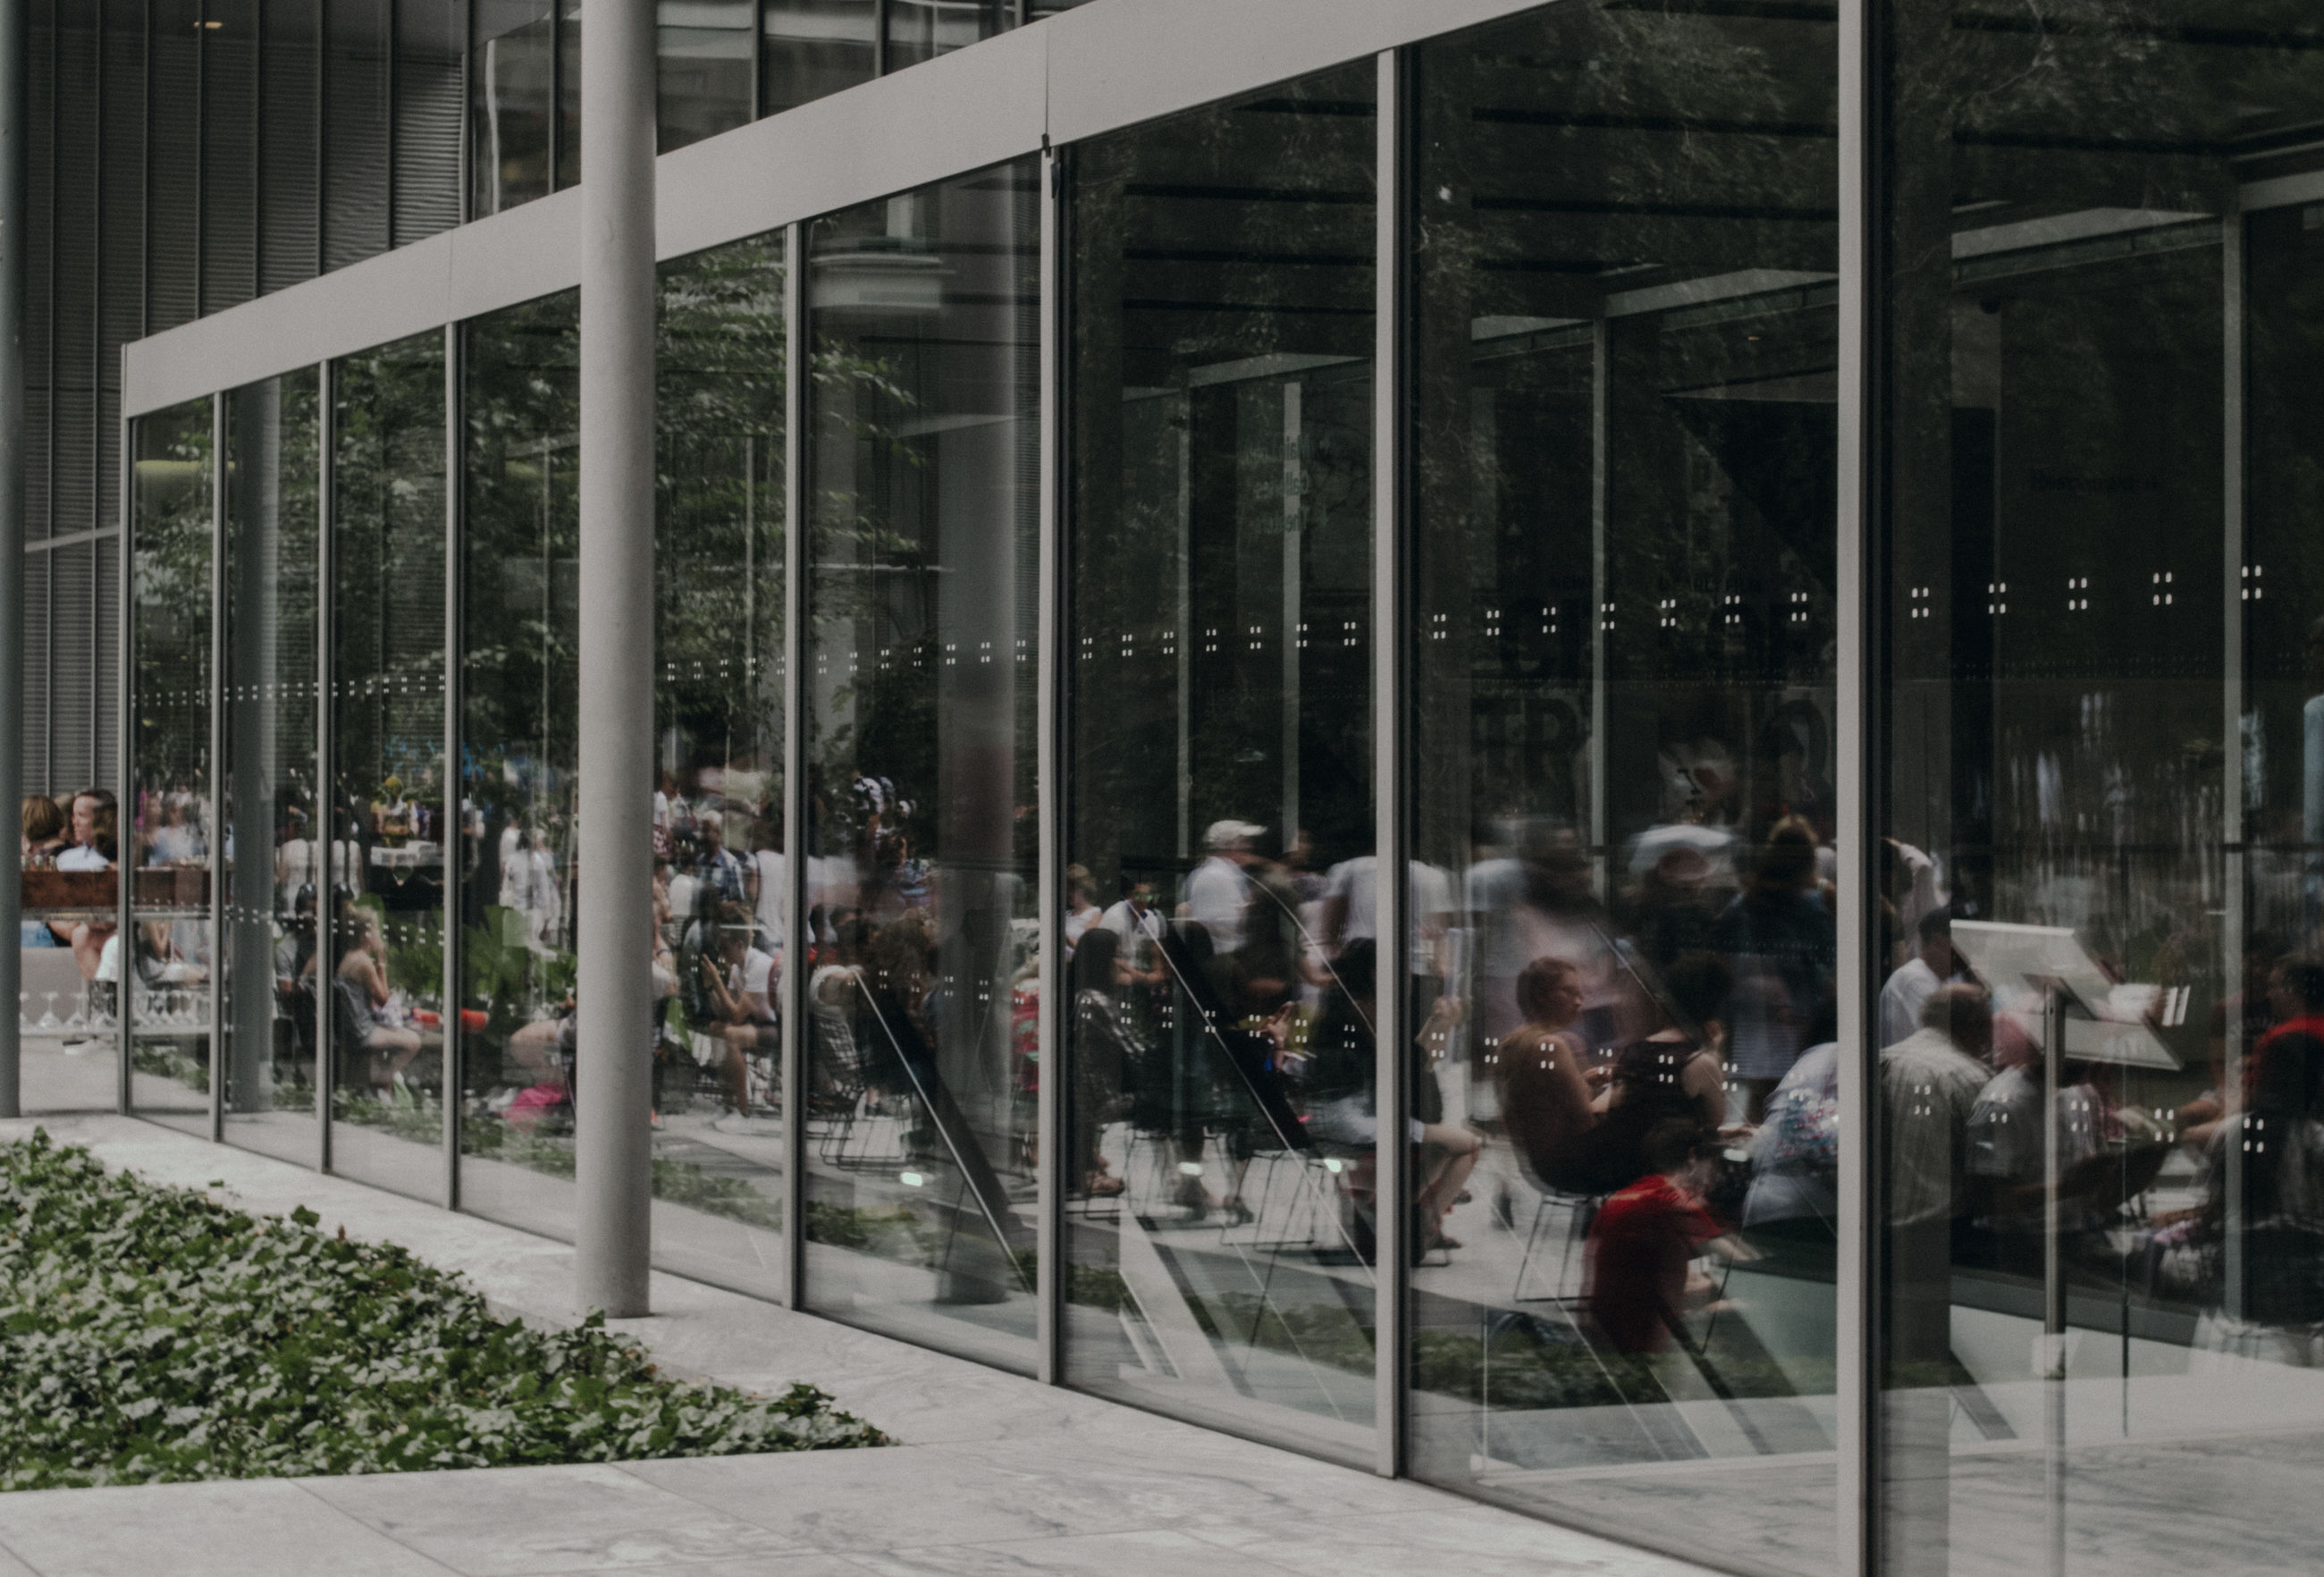 architecture, built structure, group of people, real people, glass - material, crowd, building exterior, city, men, large group of people, transparent, women, day, blurred motion, outdoors, reflection, motion, window, building, modern, office building exterior